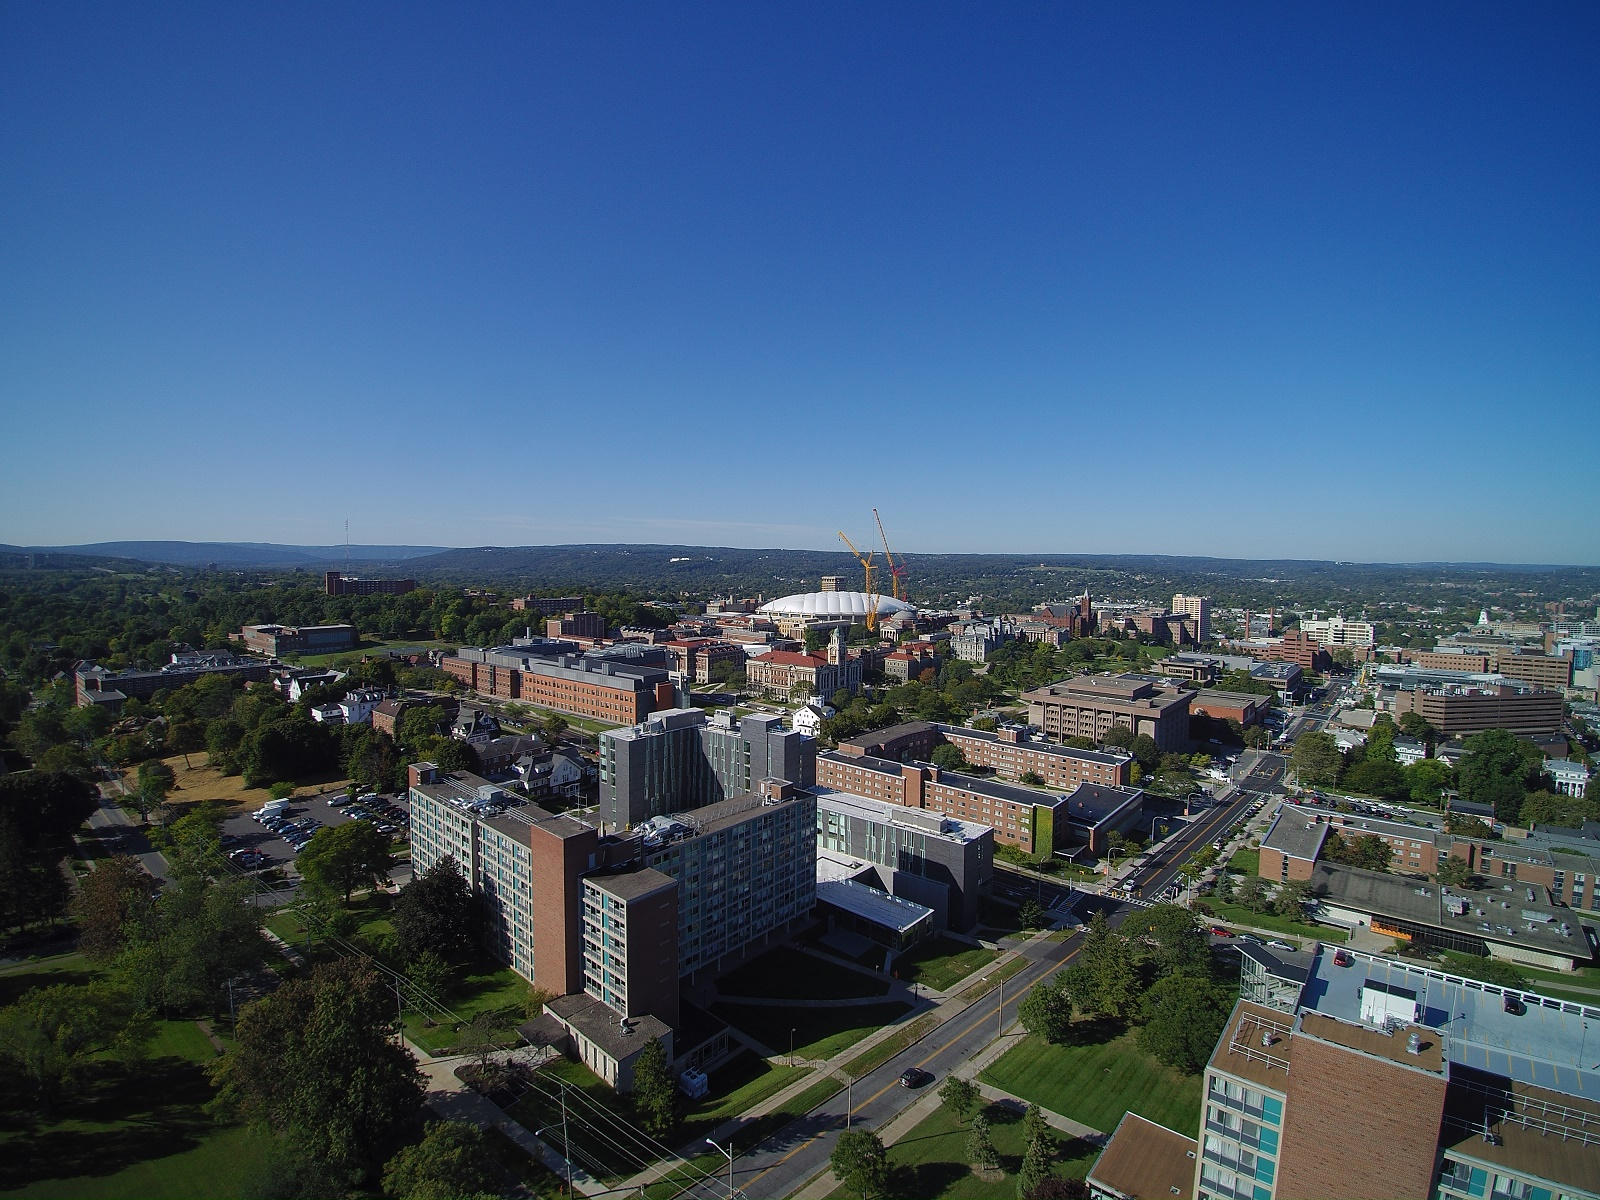 birds eye view of campus buildings